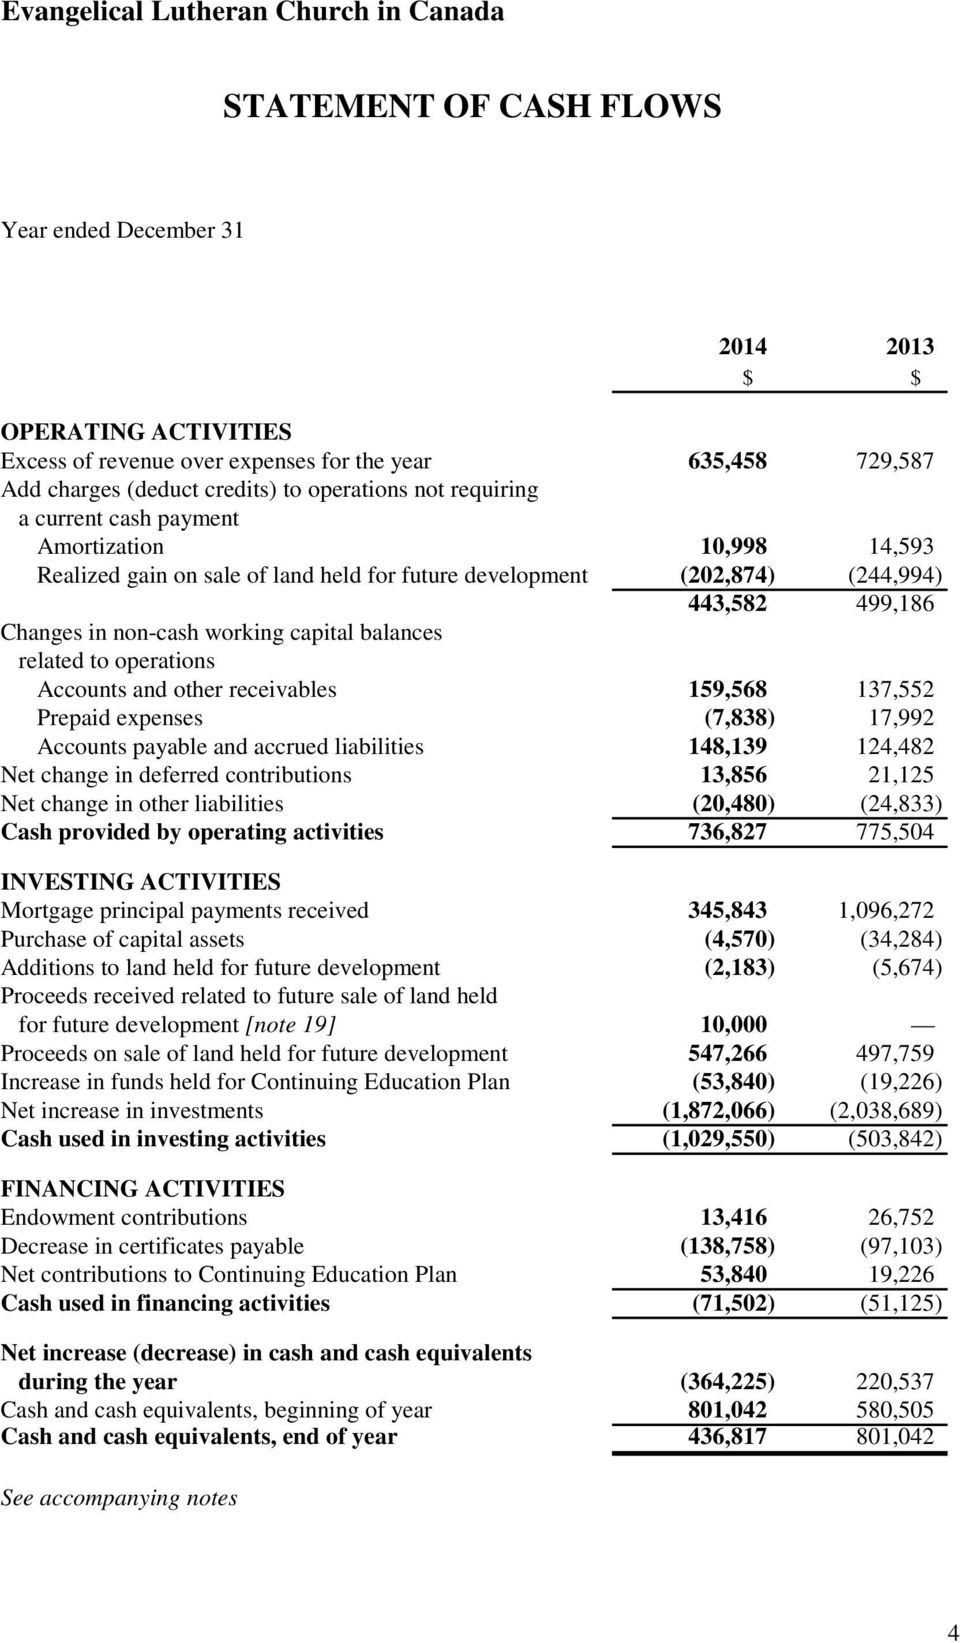 operations Accounts and other receivables 159,568 137,552 Prepaid expenses (7,838) 17,992 Accounts payable and accrued liabilities 148,139 124,482 Net change in deferred contributions 13,856 21,125